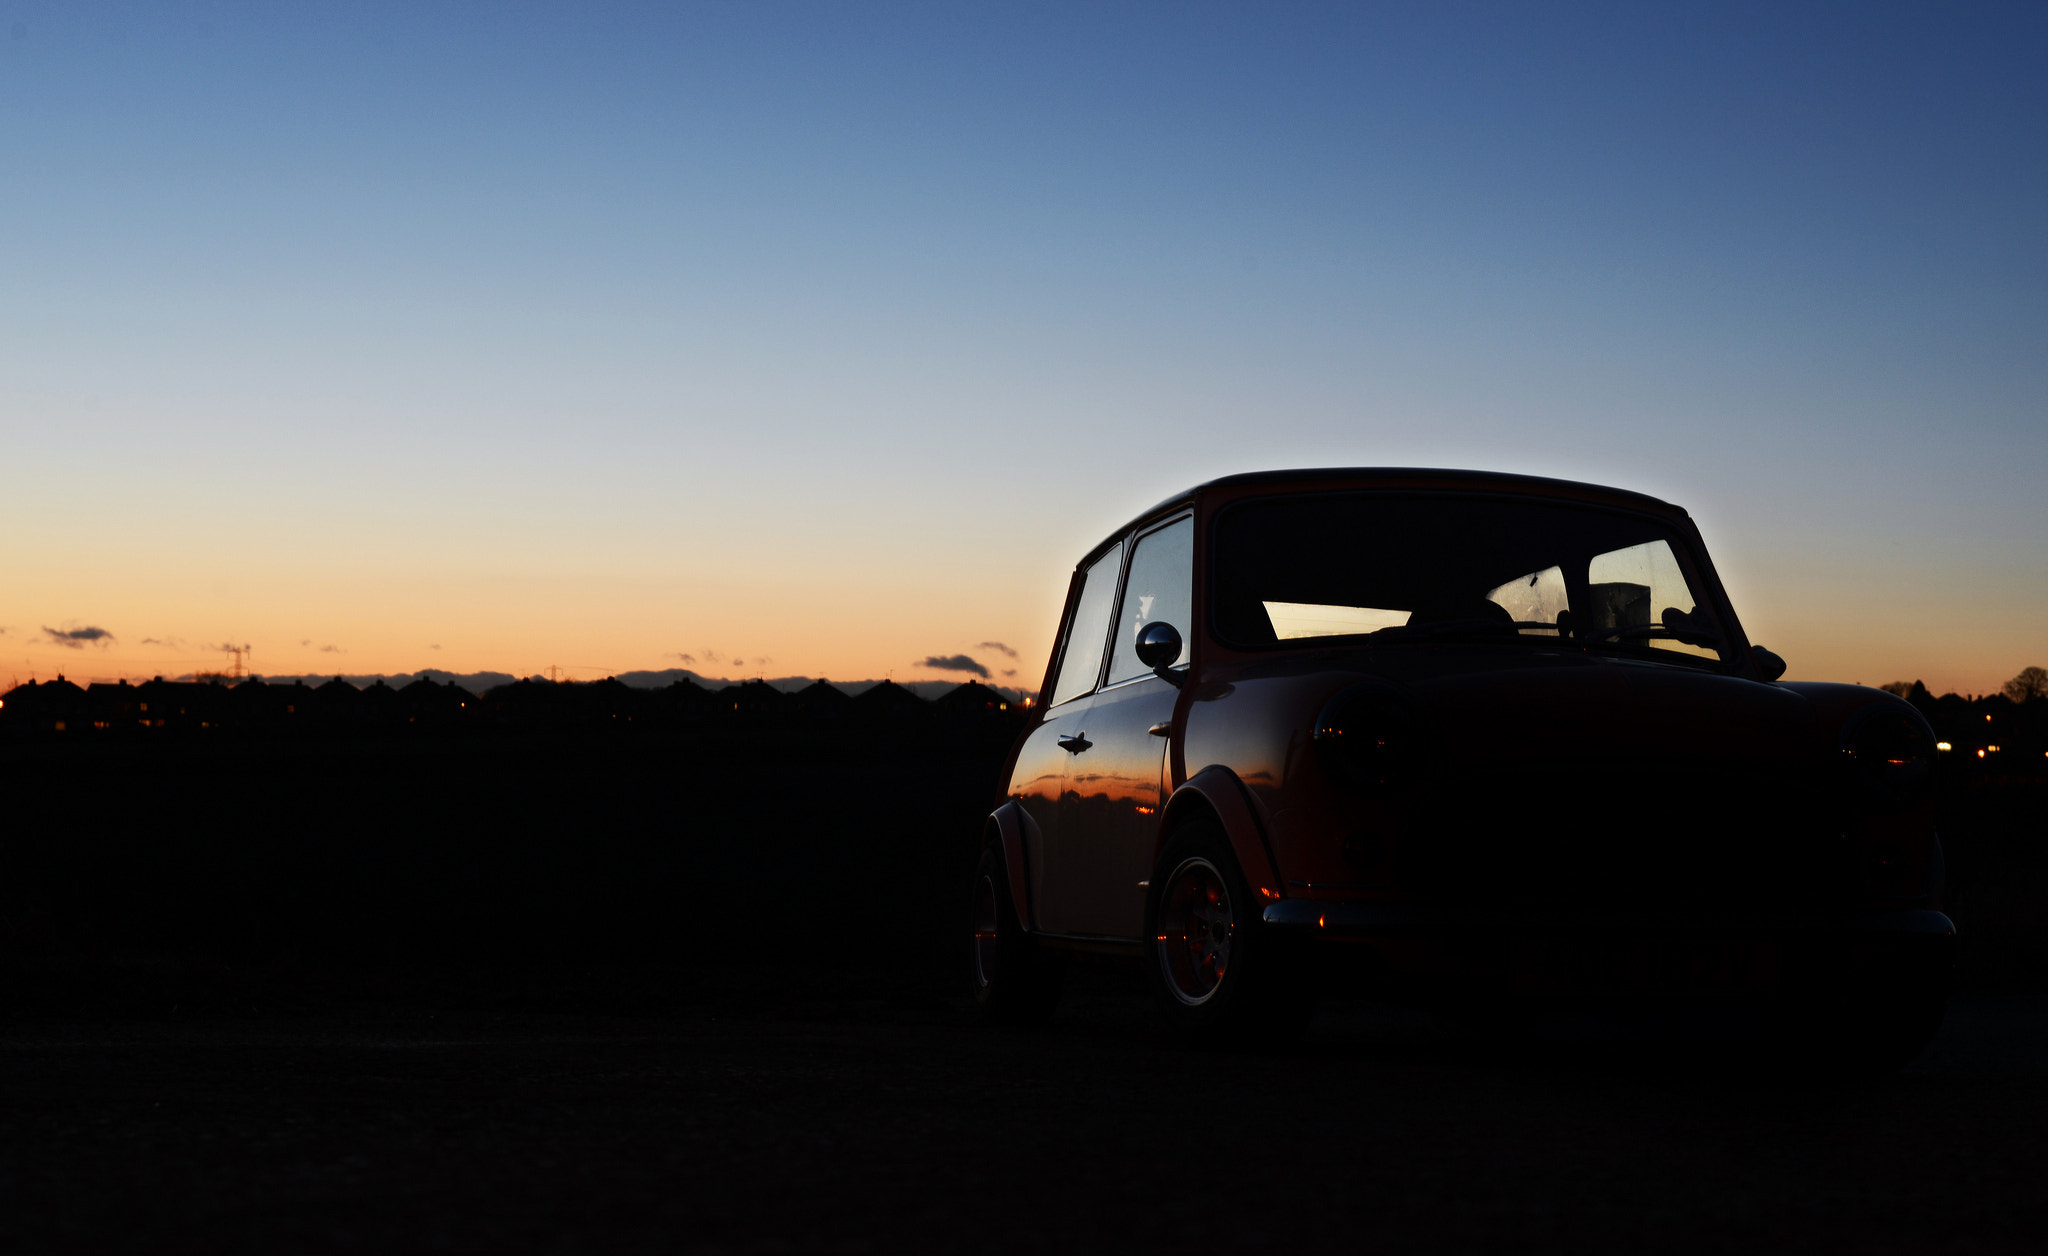 Photograph Sunset With Mini by Shaun Baldwin on 500px